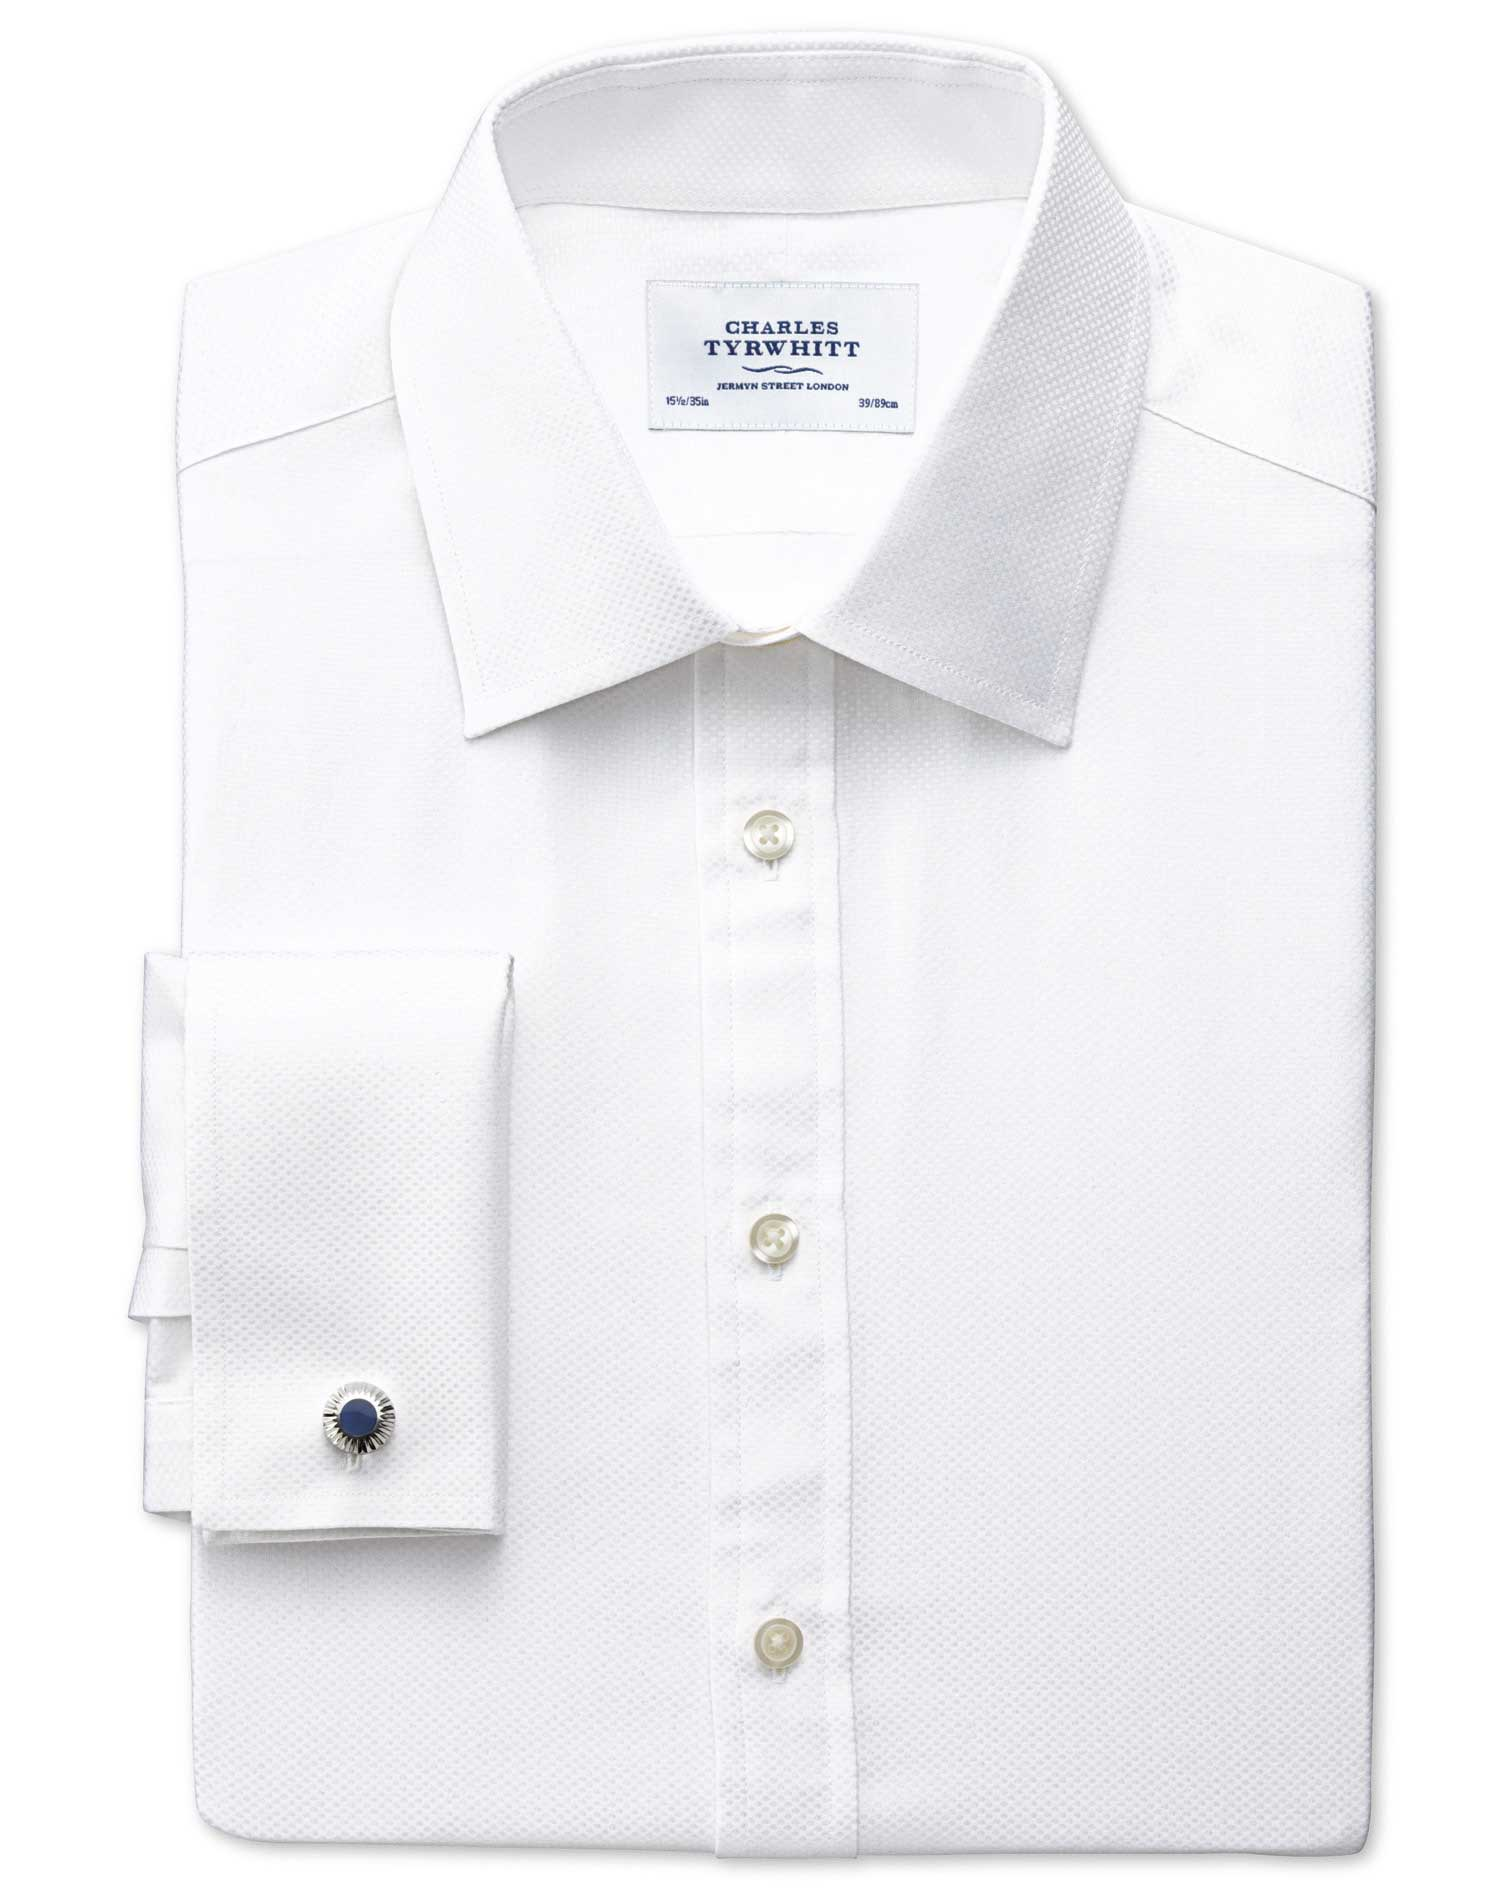 Slim Fit Pima Cotton Double-Faced White Formal Shirt Single Cuff Size 16/38 by Charles Tyrwhitt